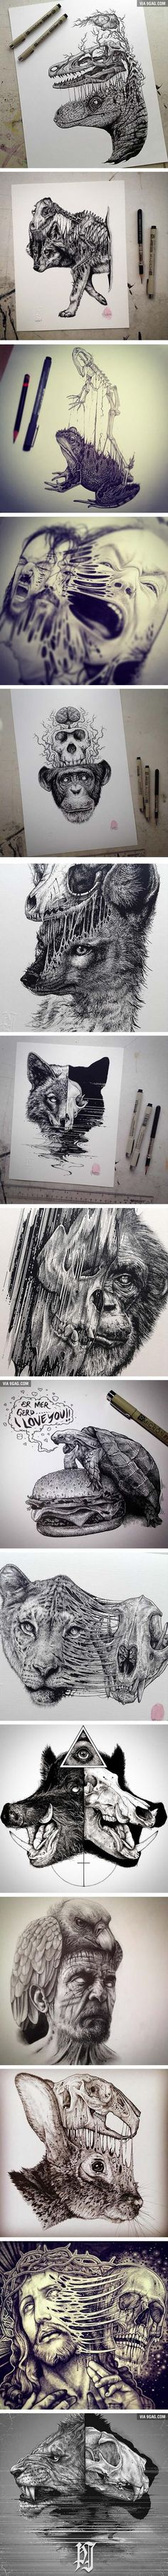 Animals Leave Their Skeletons Behind In These Stunning Dark Drawings (By Paul Jackson)                                                                                                                                                      More #DrawingSketches